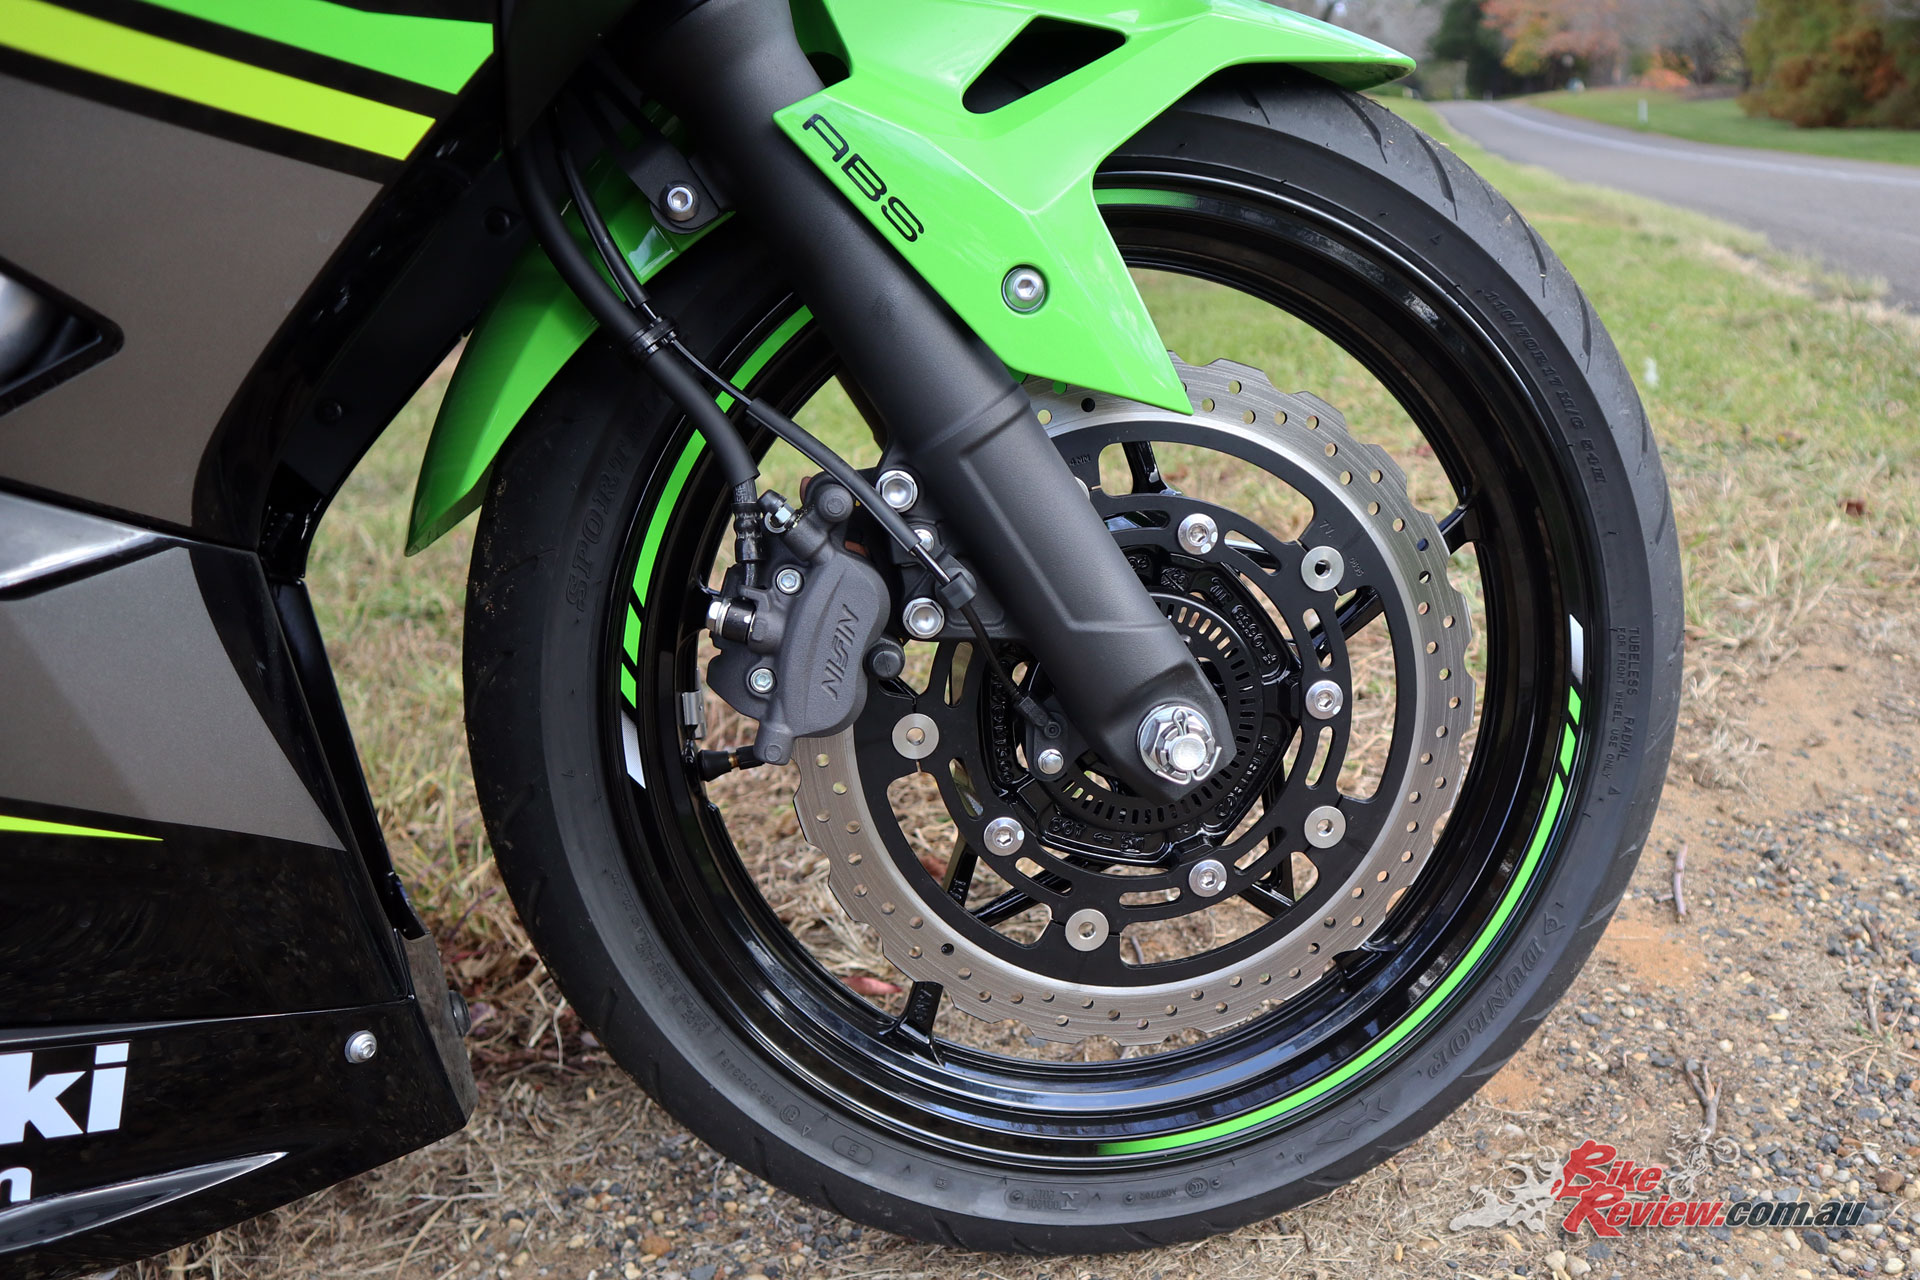 A single 310mm rotor and dual piston caliper are more than up to the task due to the bike's light weight